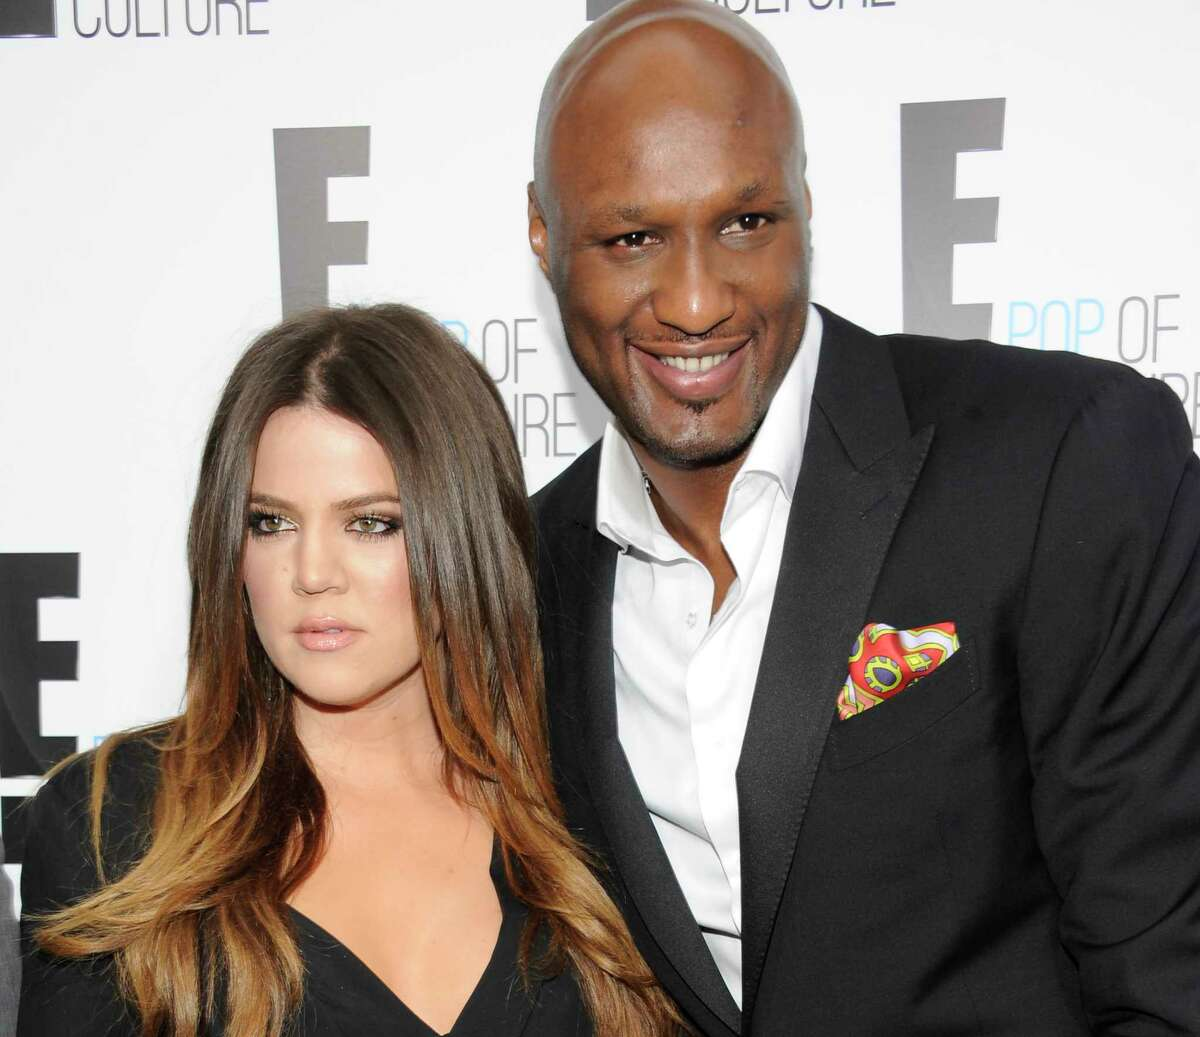 In this April 30, 2012 file photo, Khloe Kardashian Odom and Lamar Odom attend an E! Network upfront event at Gotham Hall in New York.